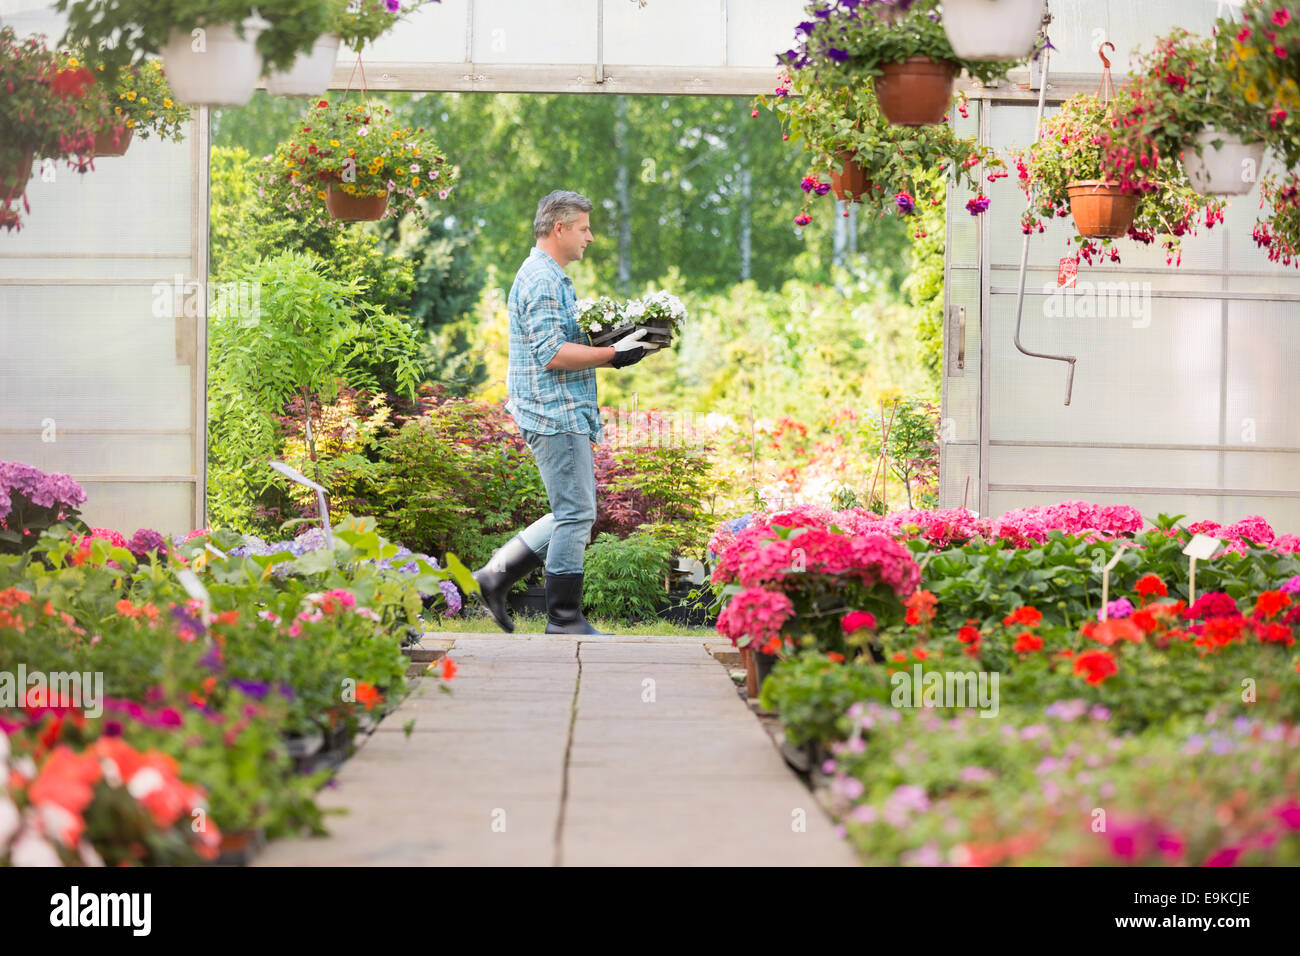 Side view of gardener carrying crate with flower pots while walking outside greenhouse - Stock Image